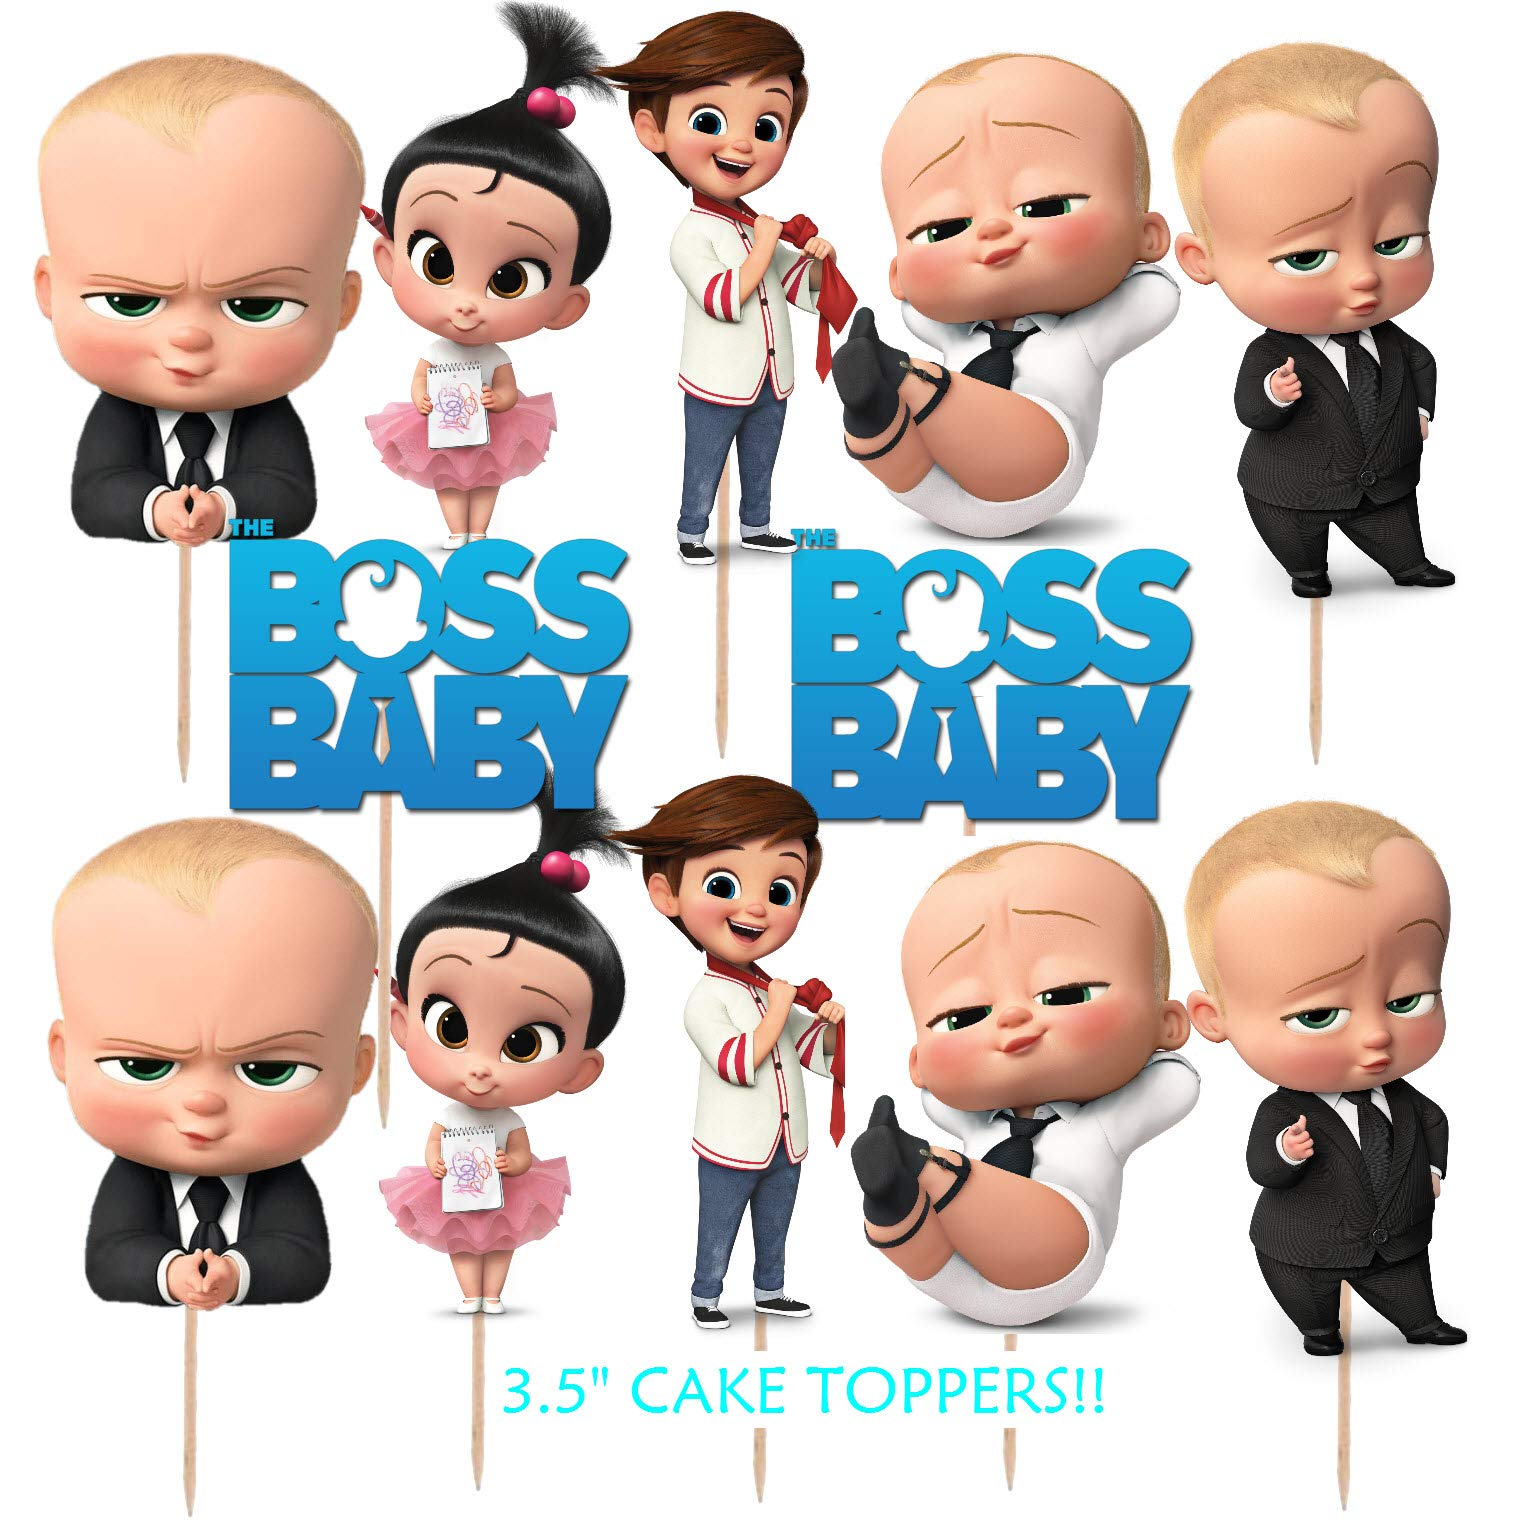 Baby Boss Background For Tarpaulin - Outfit Ideas for You